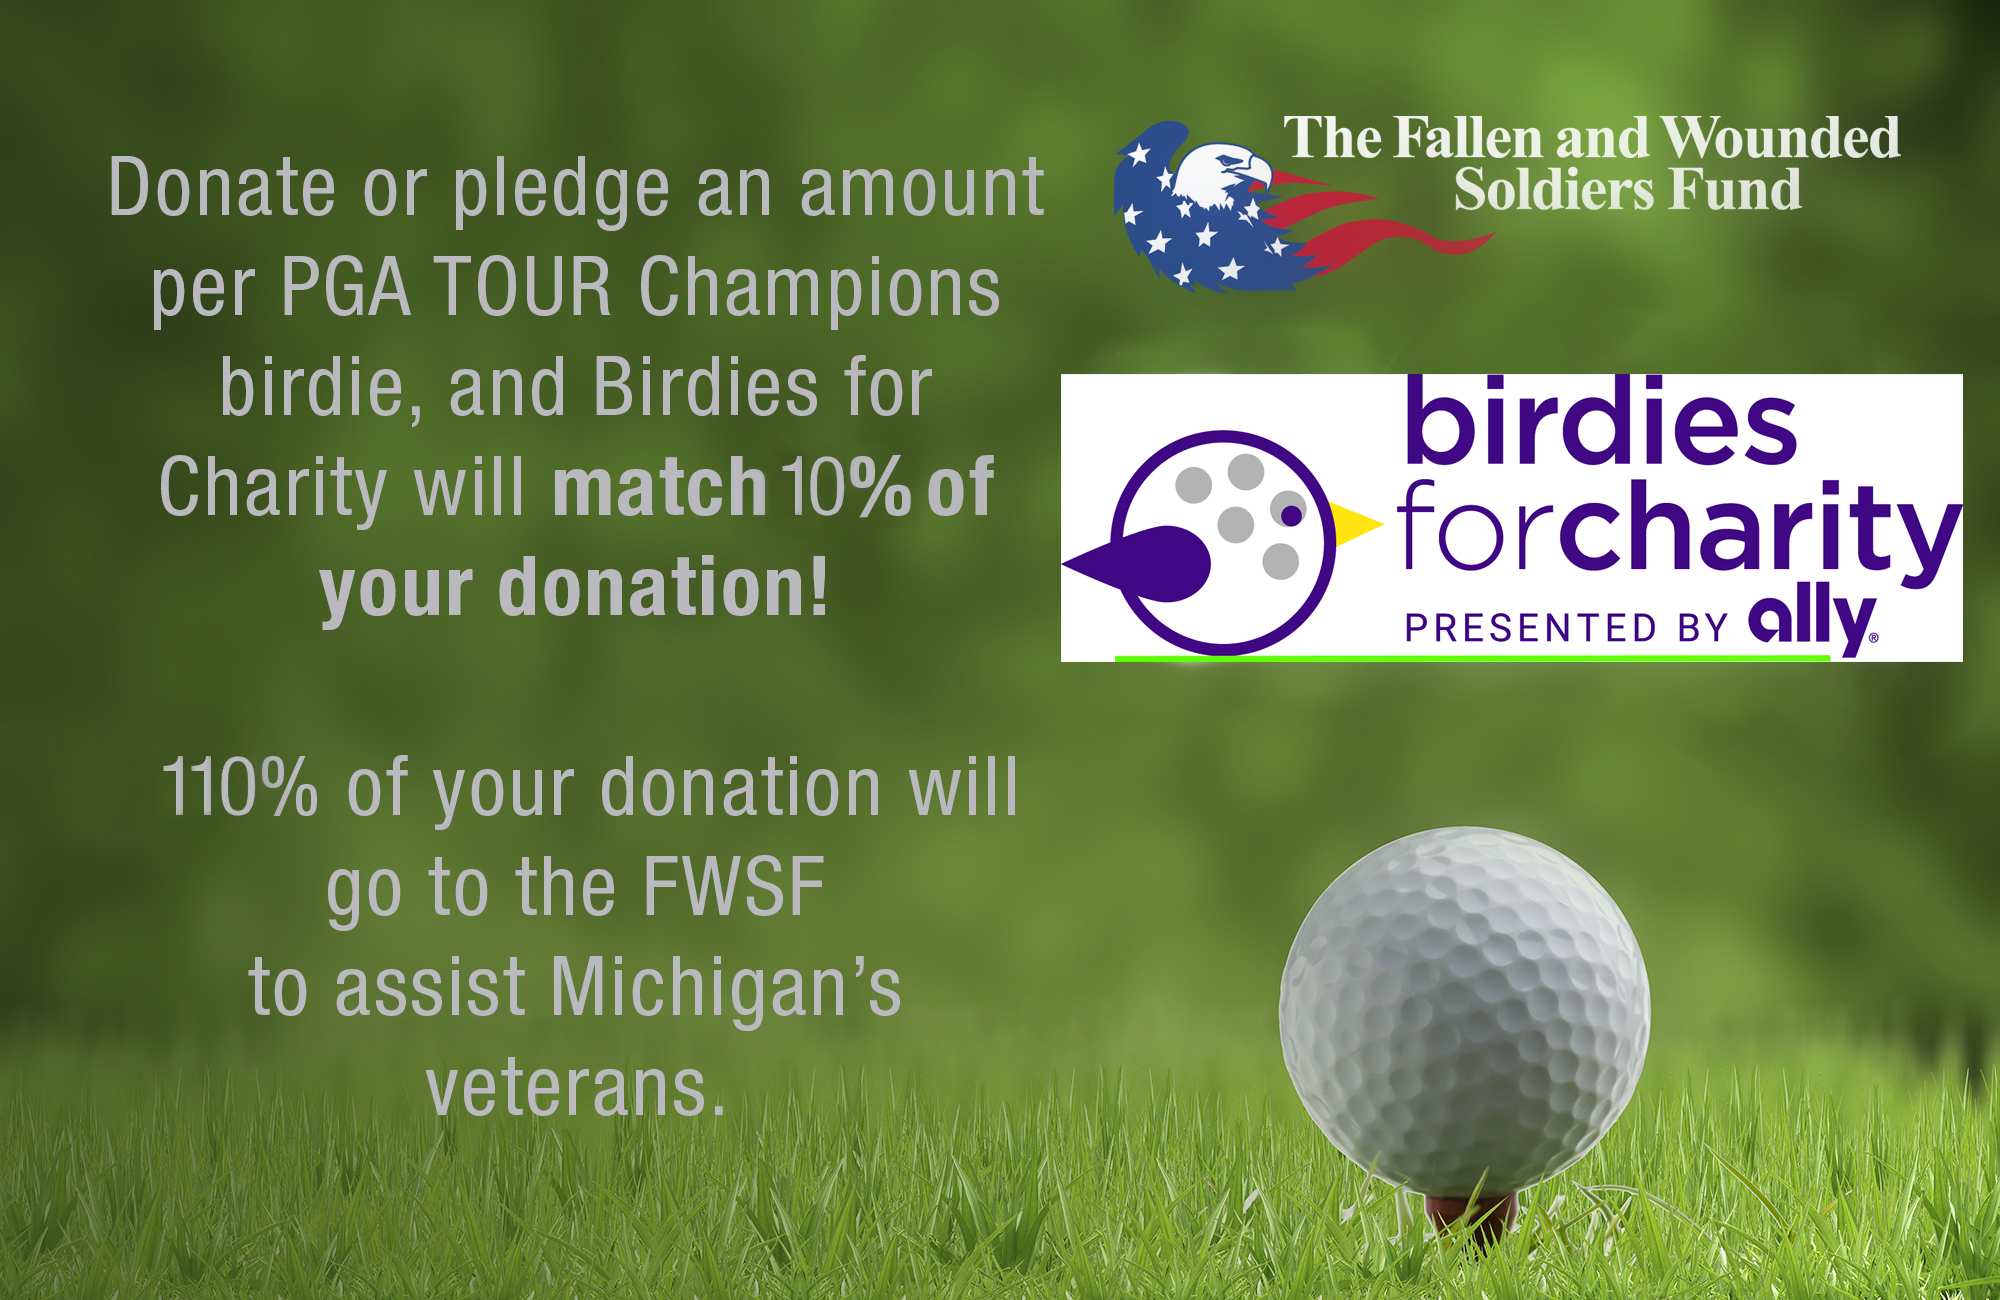 Click  here  to donate and designate the Fallen and Wounded Soldiers Fund as your charity.